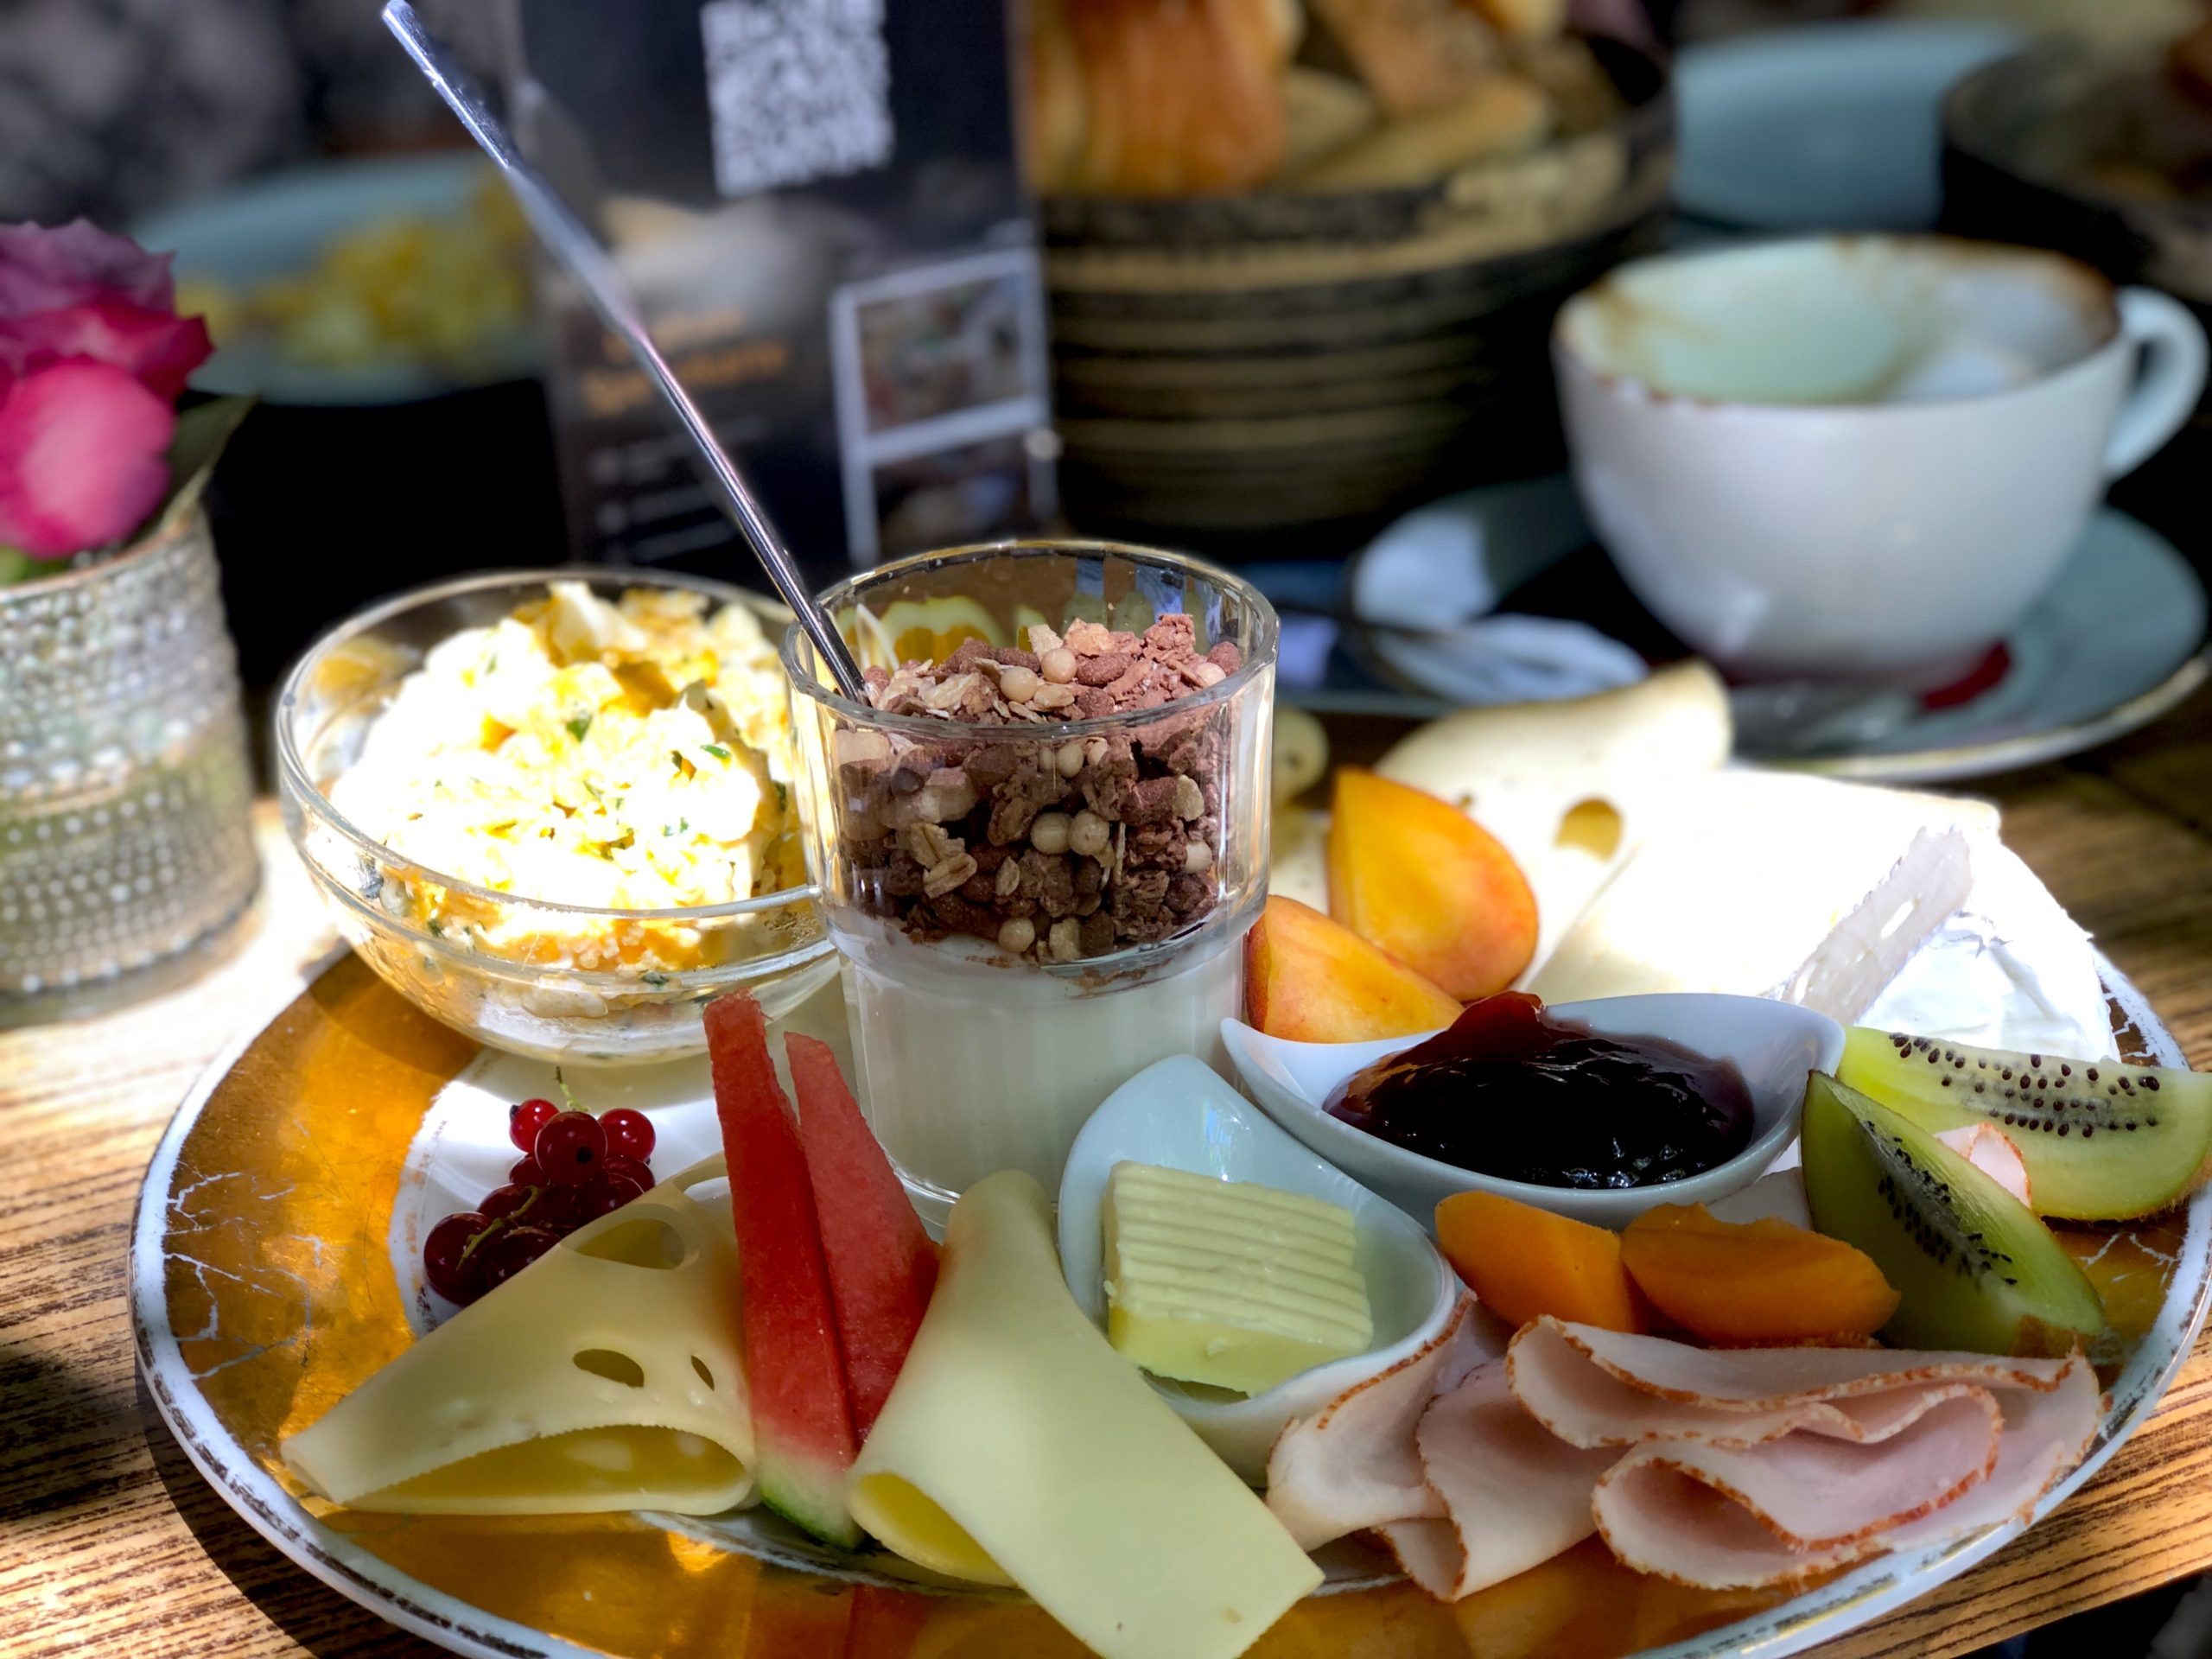 Weiden restaurants include gourmet breakfast plates like this platter at Le Pére